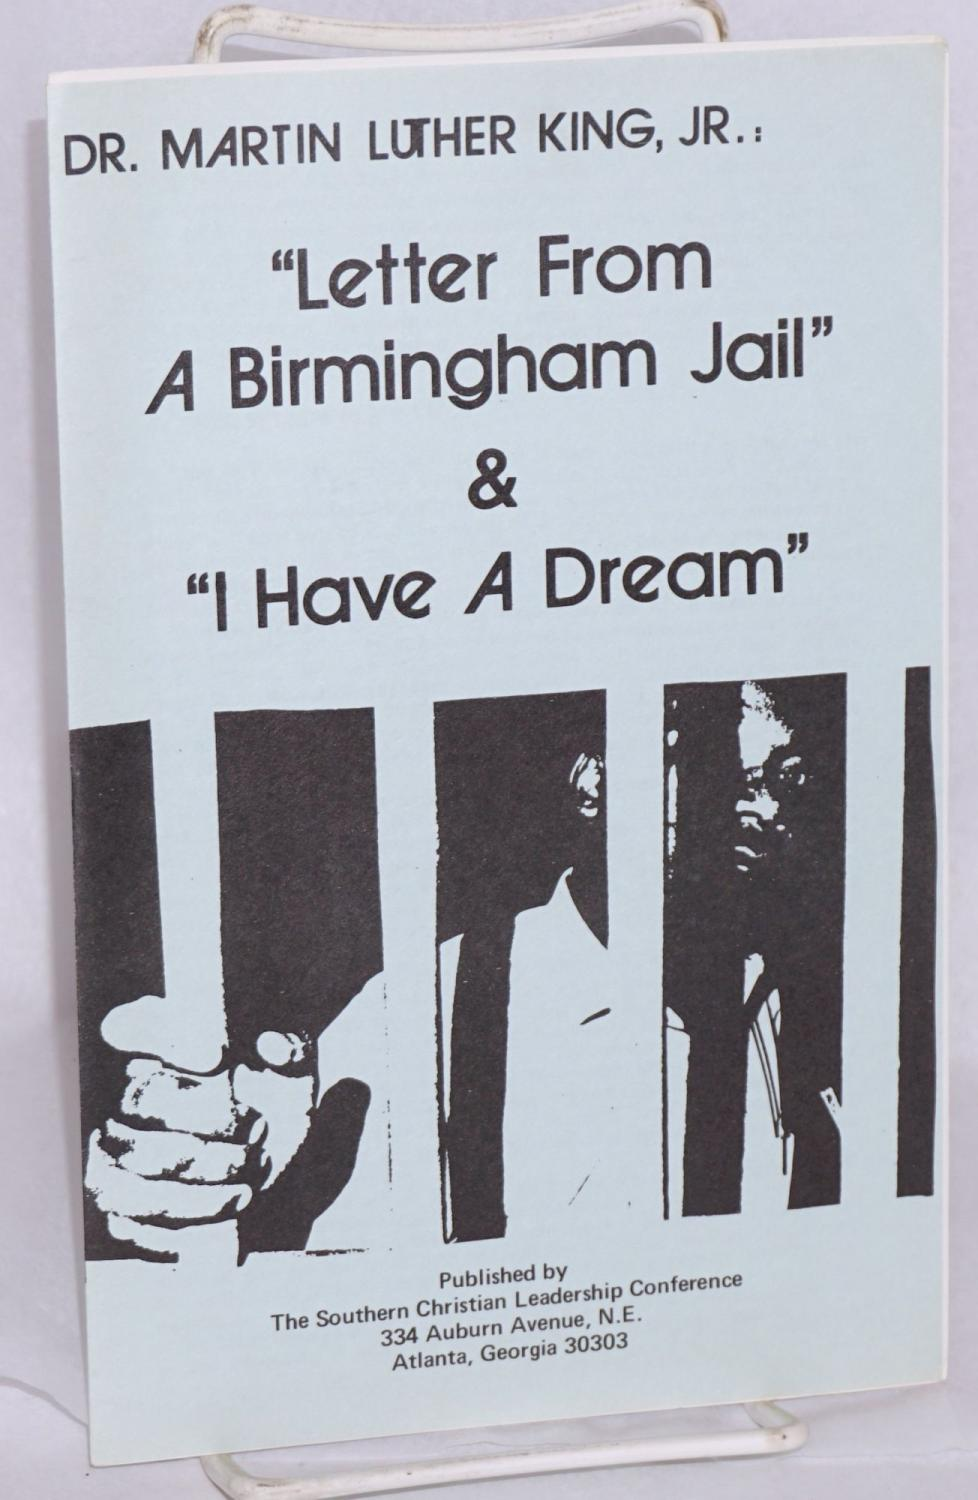 an analysis of letter from birmingham jail by martin luther king Letter from birmingham jail analysis essaysdr martin luther king, jr wrote the letter from birmingham jail in order to address the biggest issue in birmingham and the united states at the time.